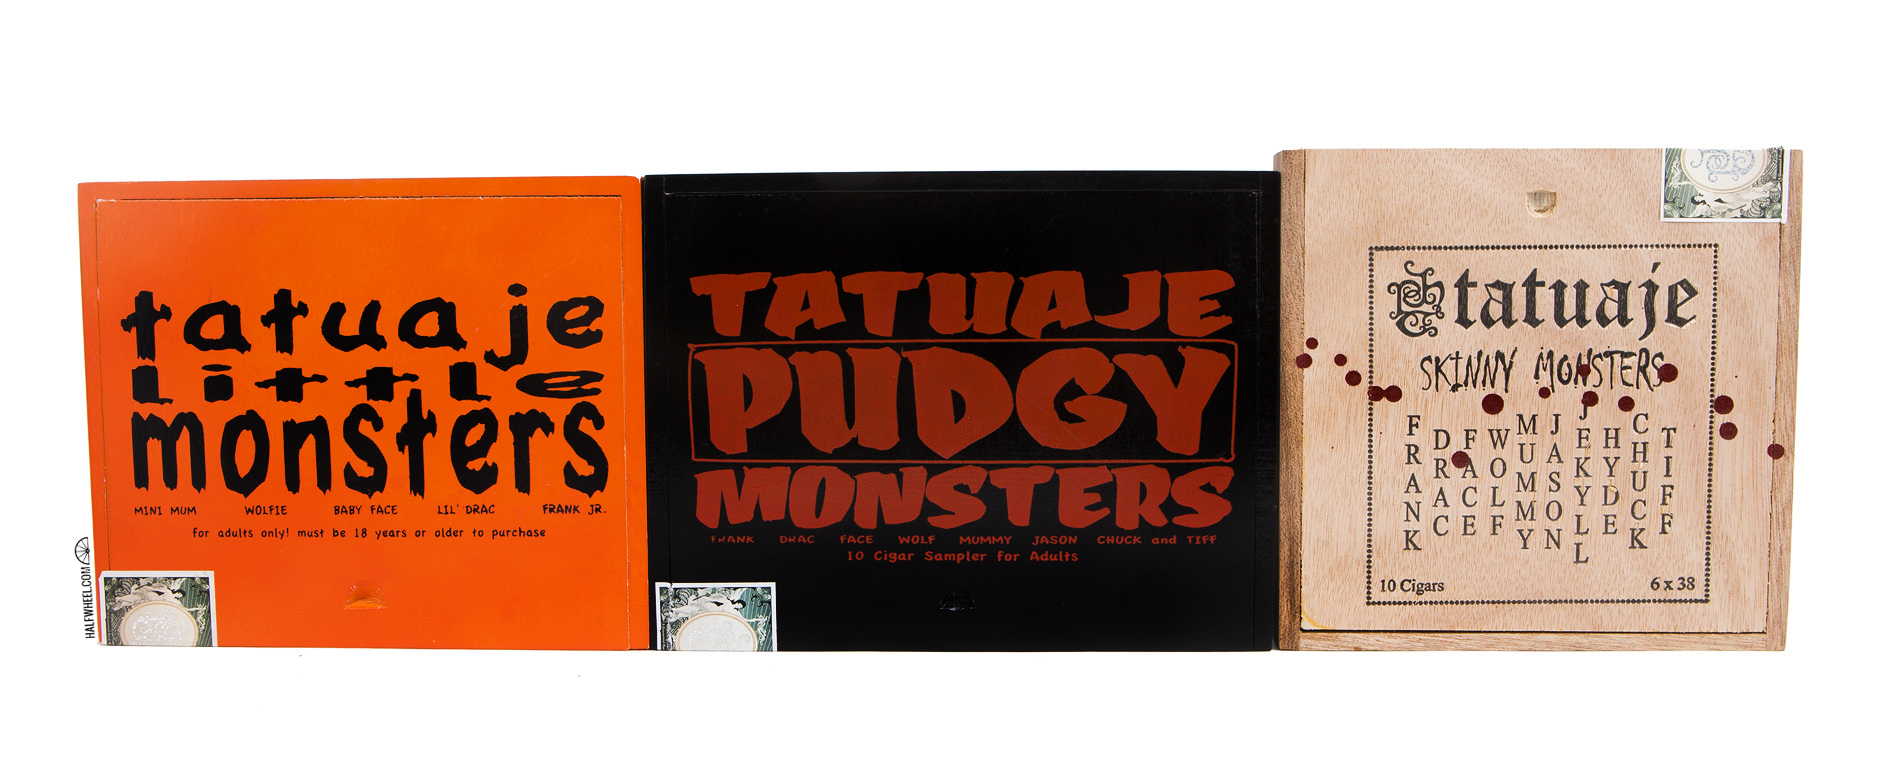 Tatuaje Monster Series Sampler Boxes